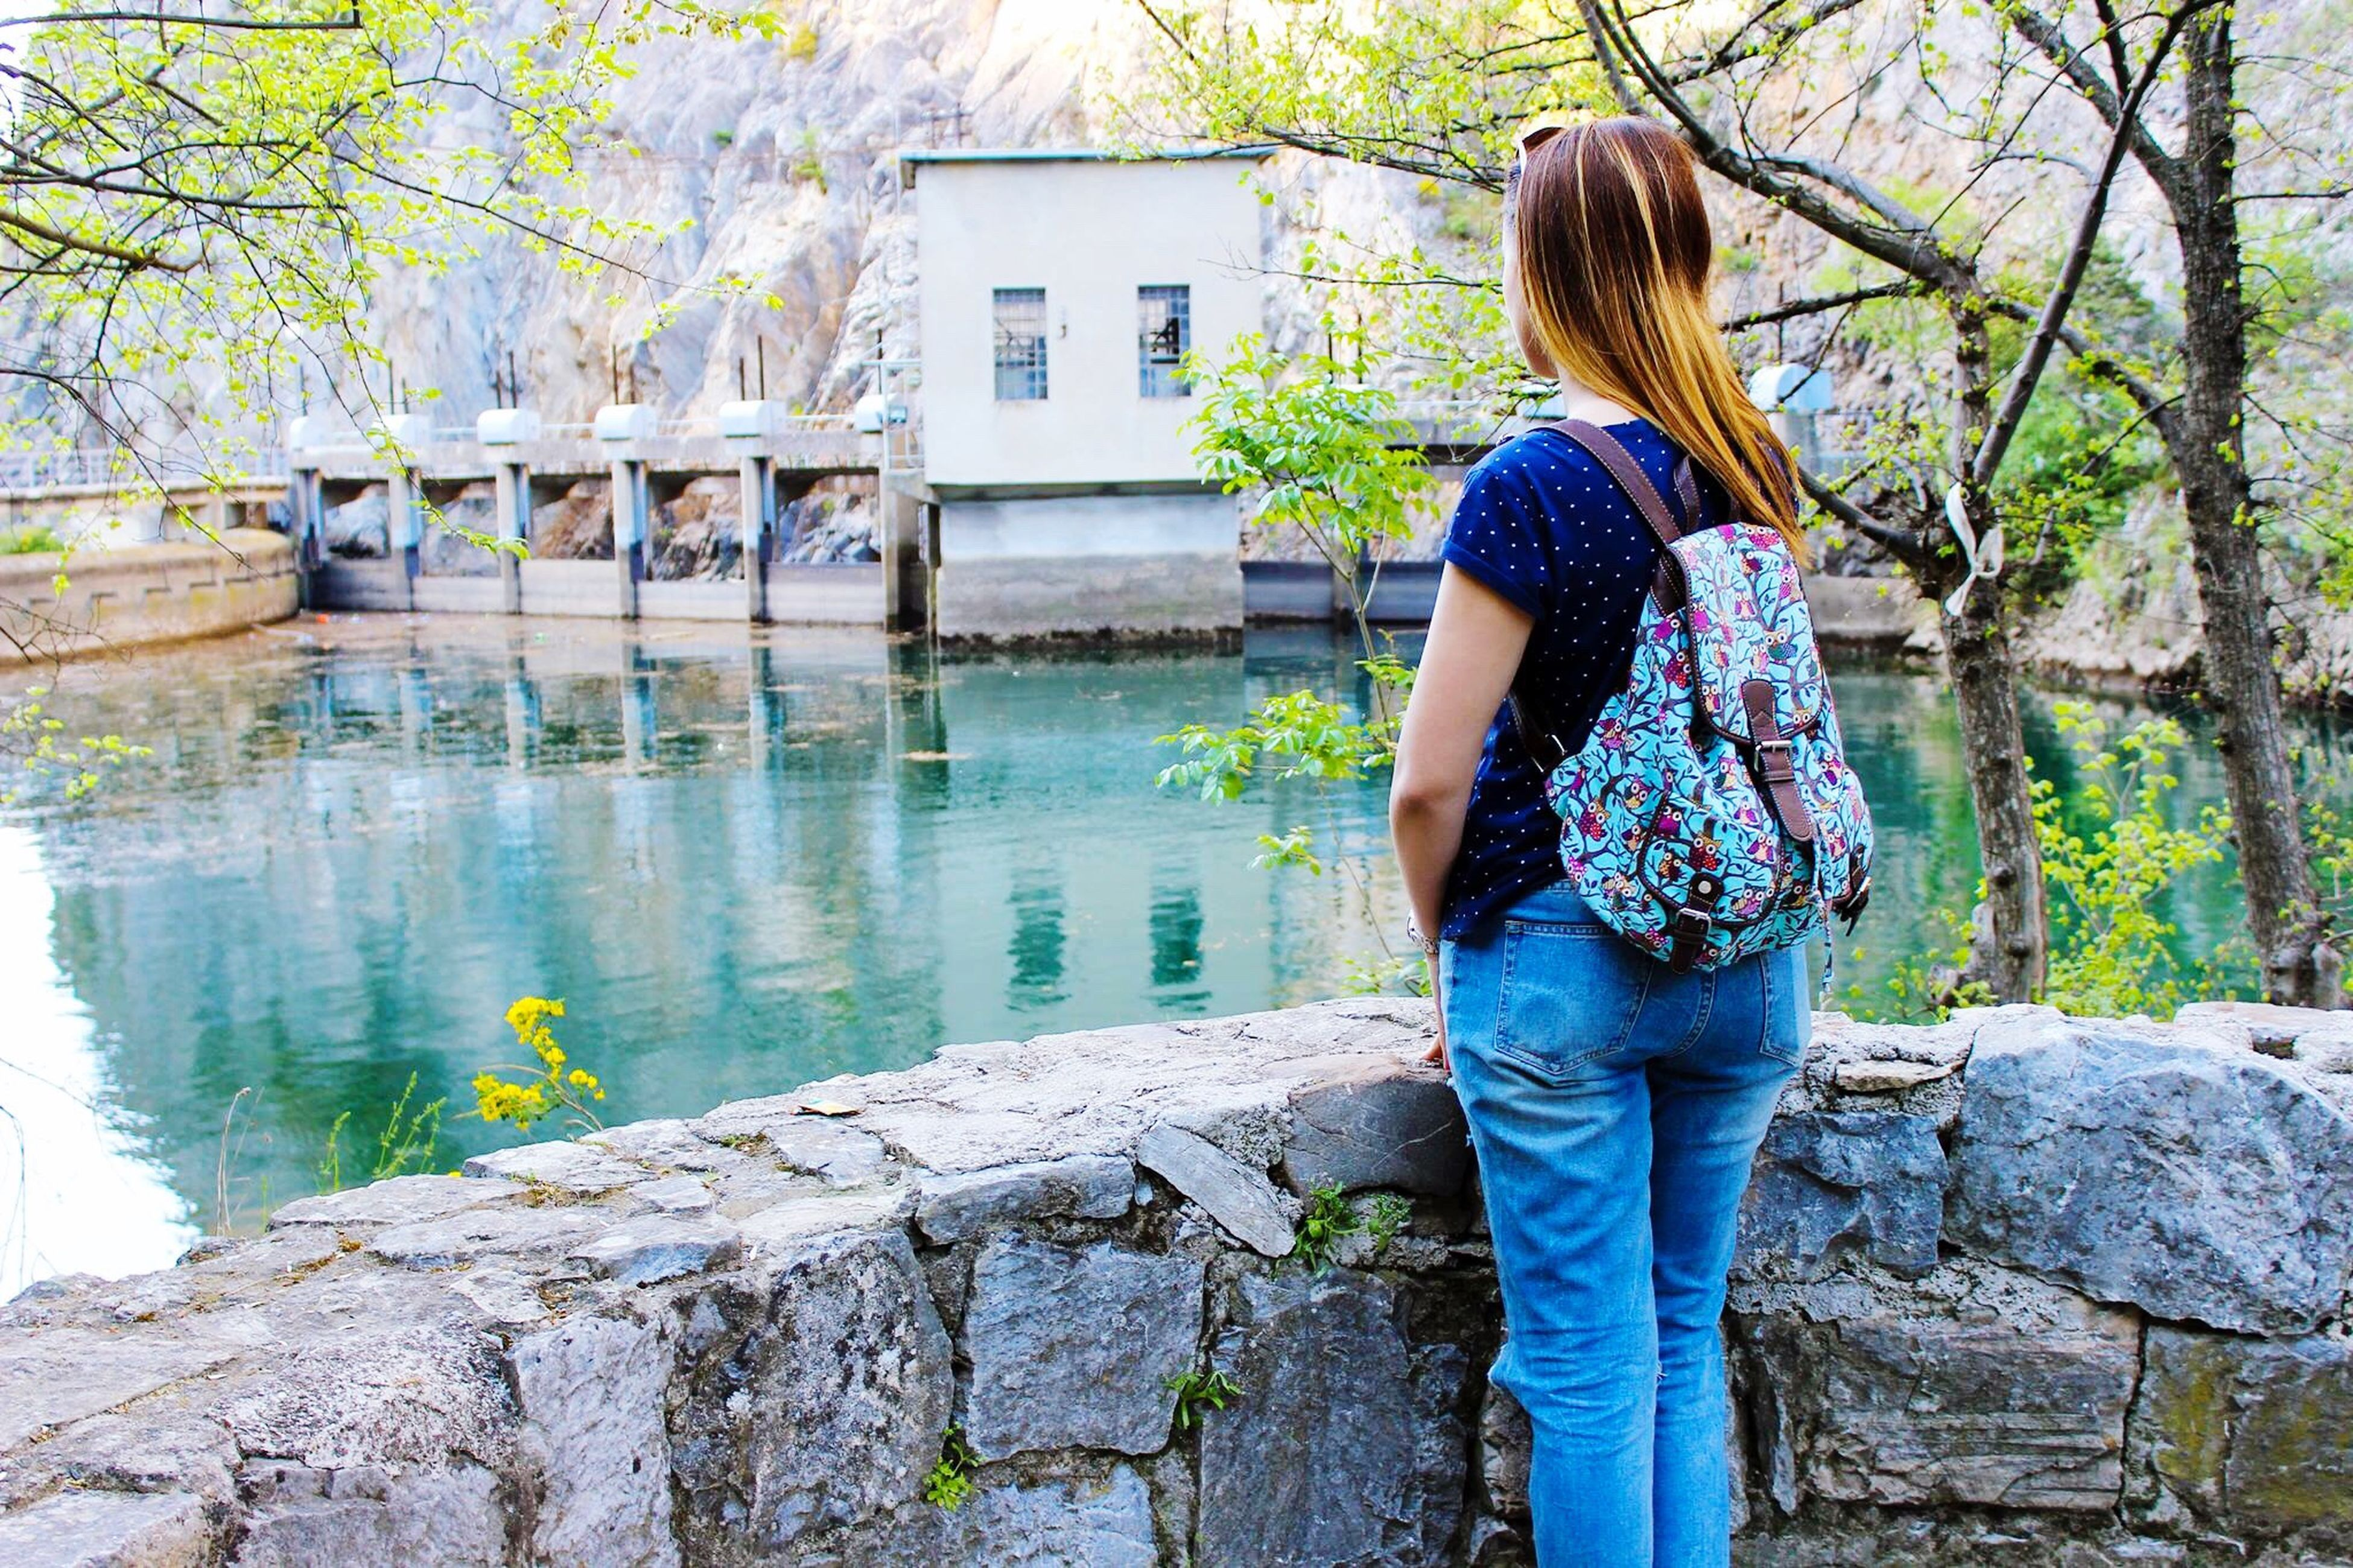 lifestyles, casual clothing, standing, full length, leisure activity, water, rear view, built structure, young adult, three quarter length, person, building exterior, tree, architecture, side view, young women, outdoors